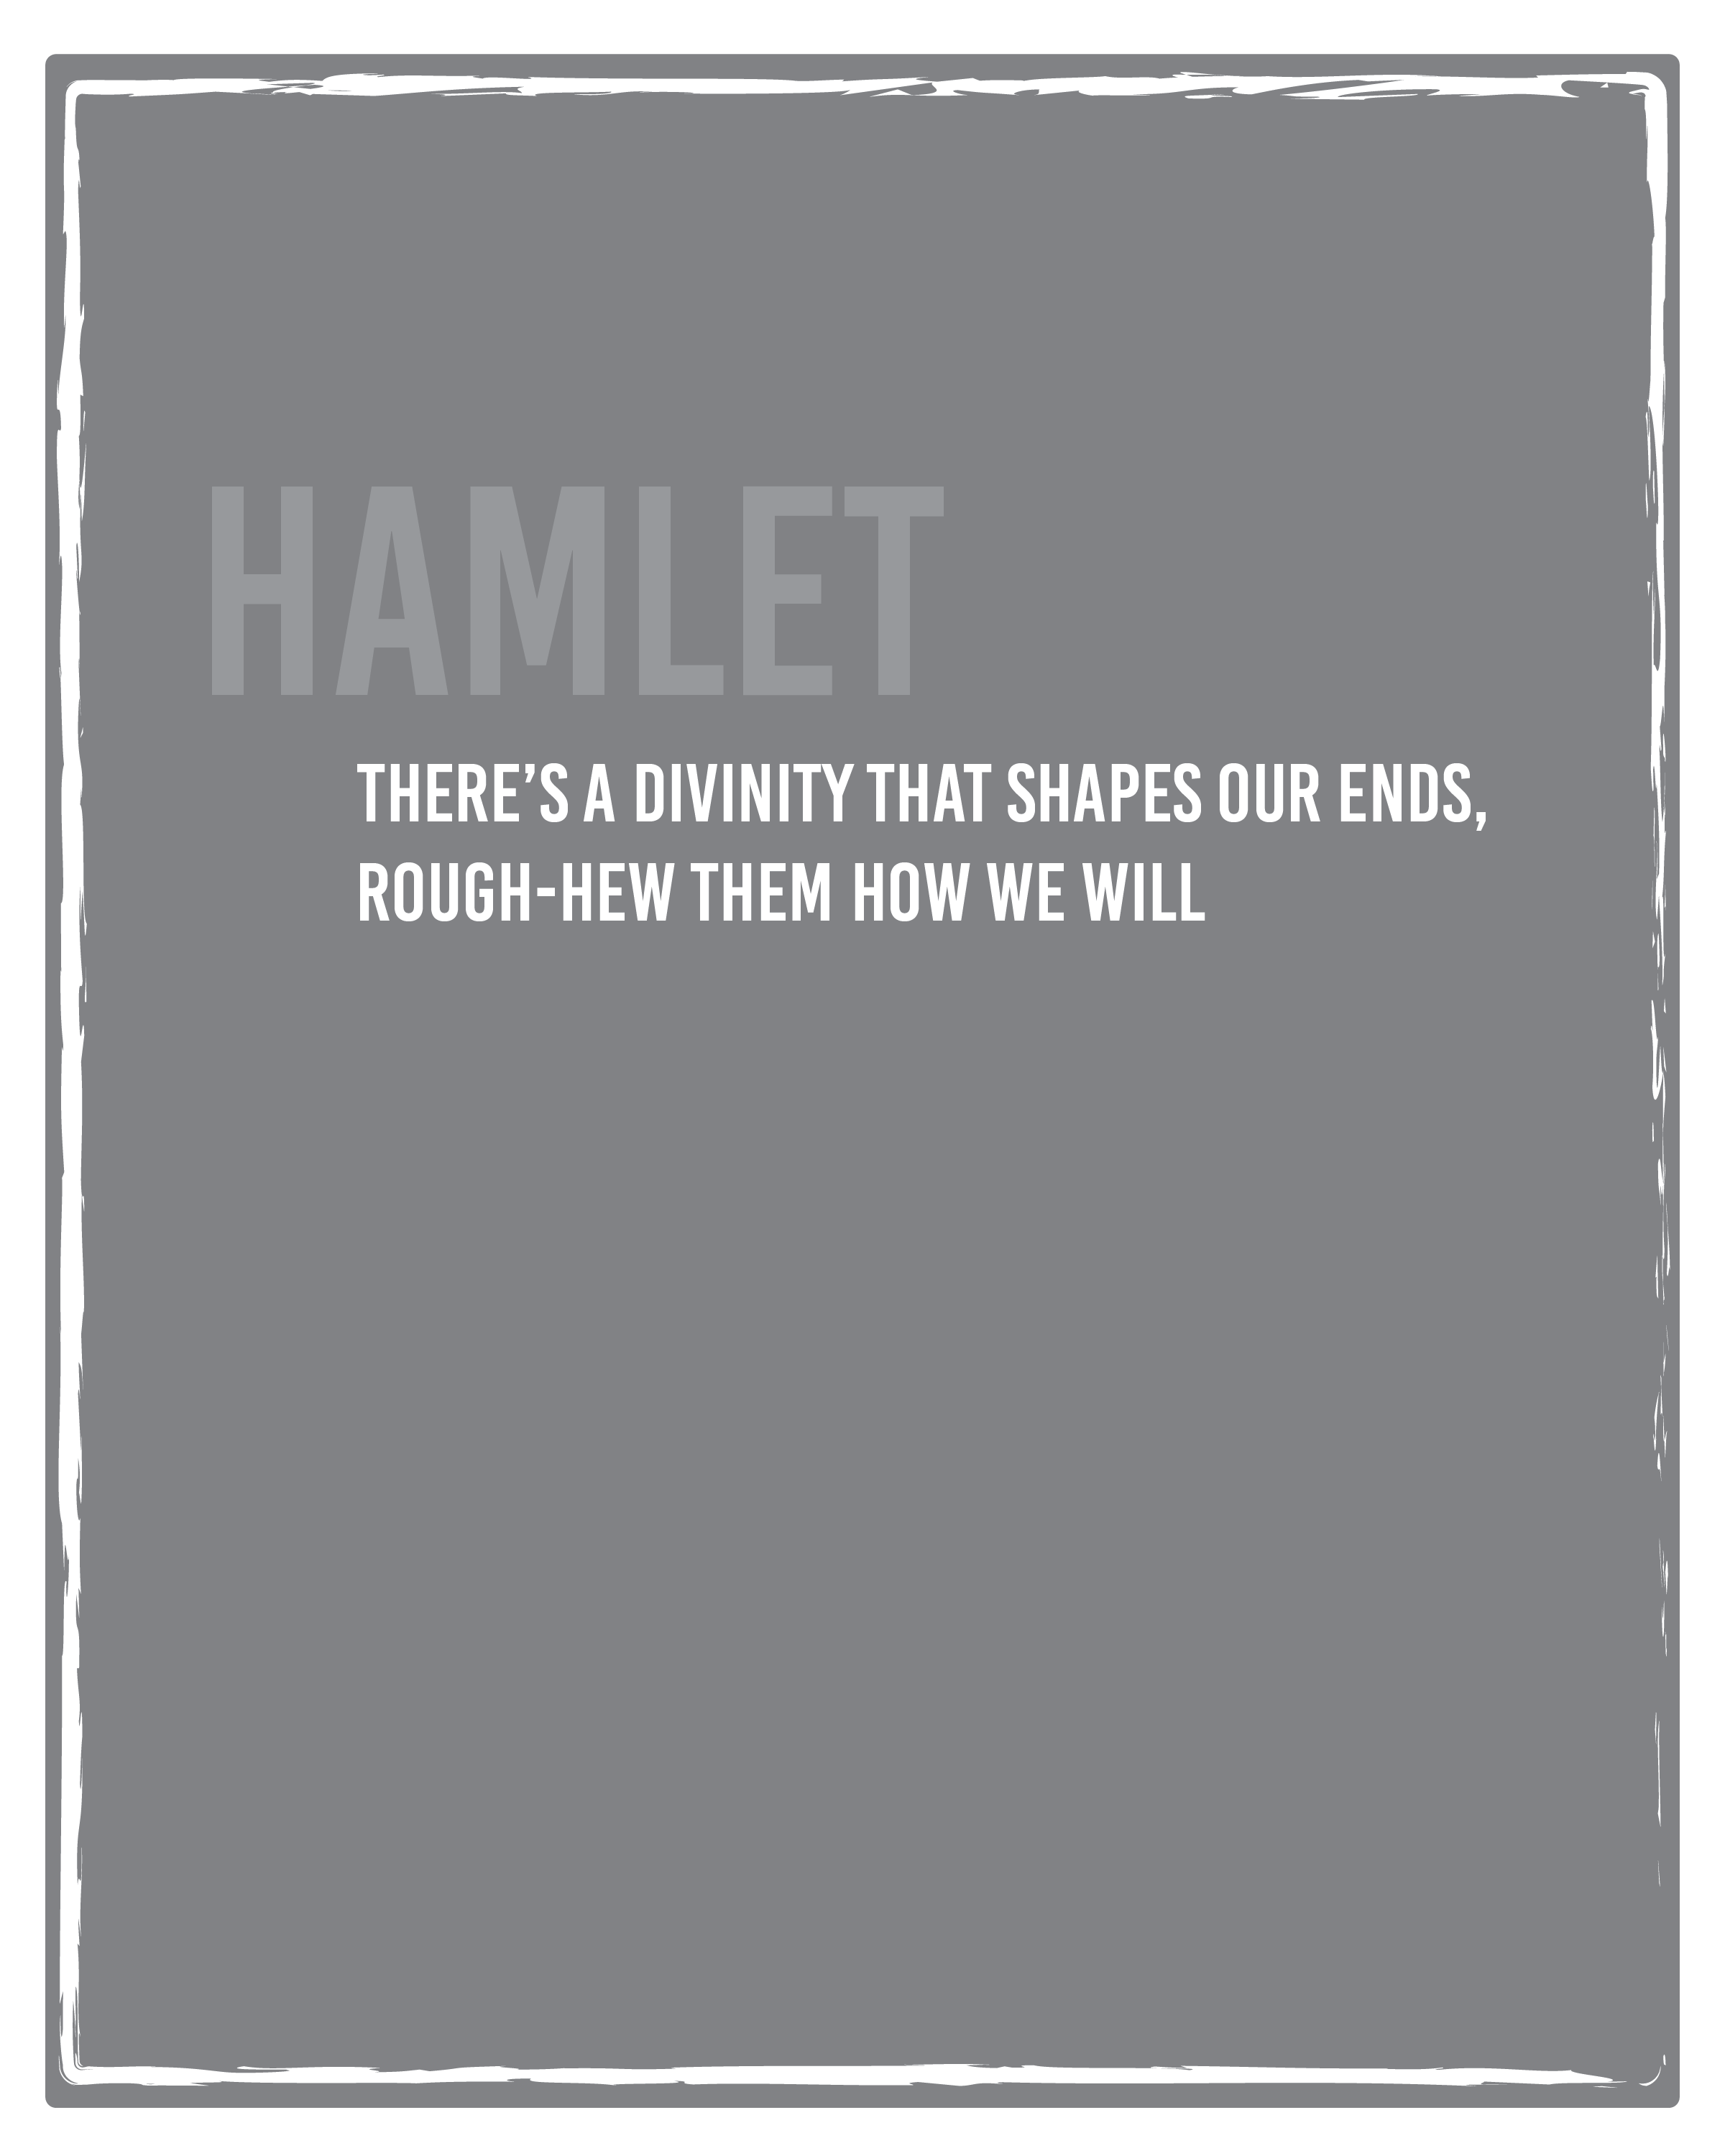 Hamlet Posters ACT V-04.png